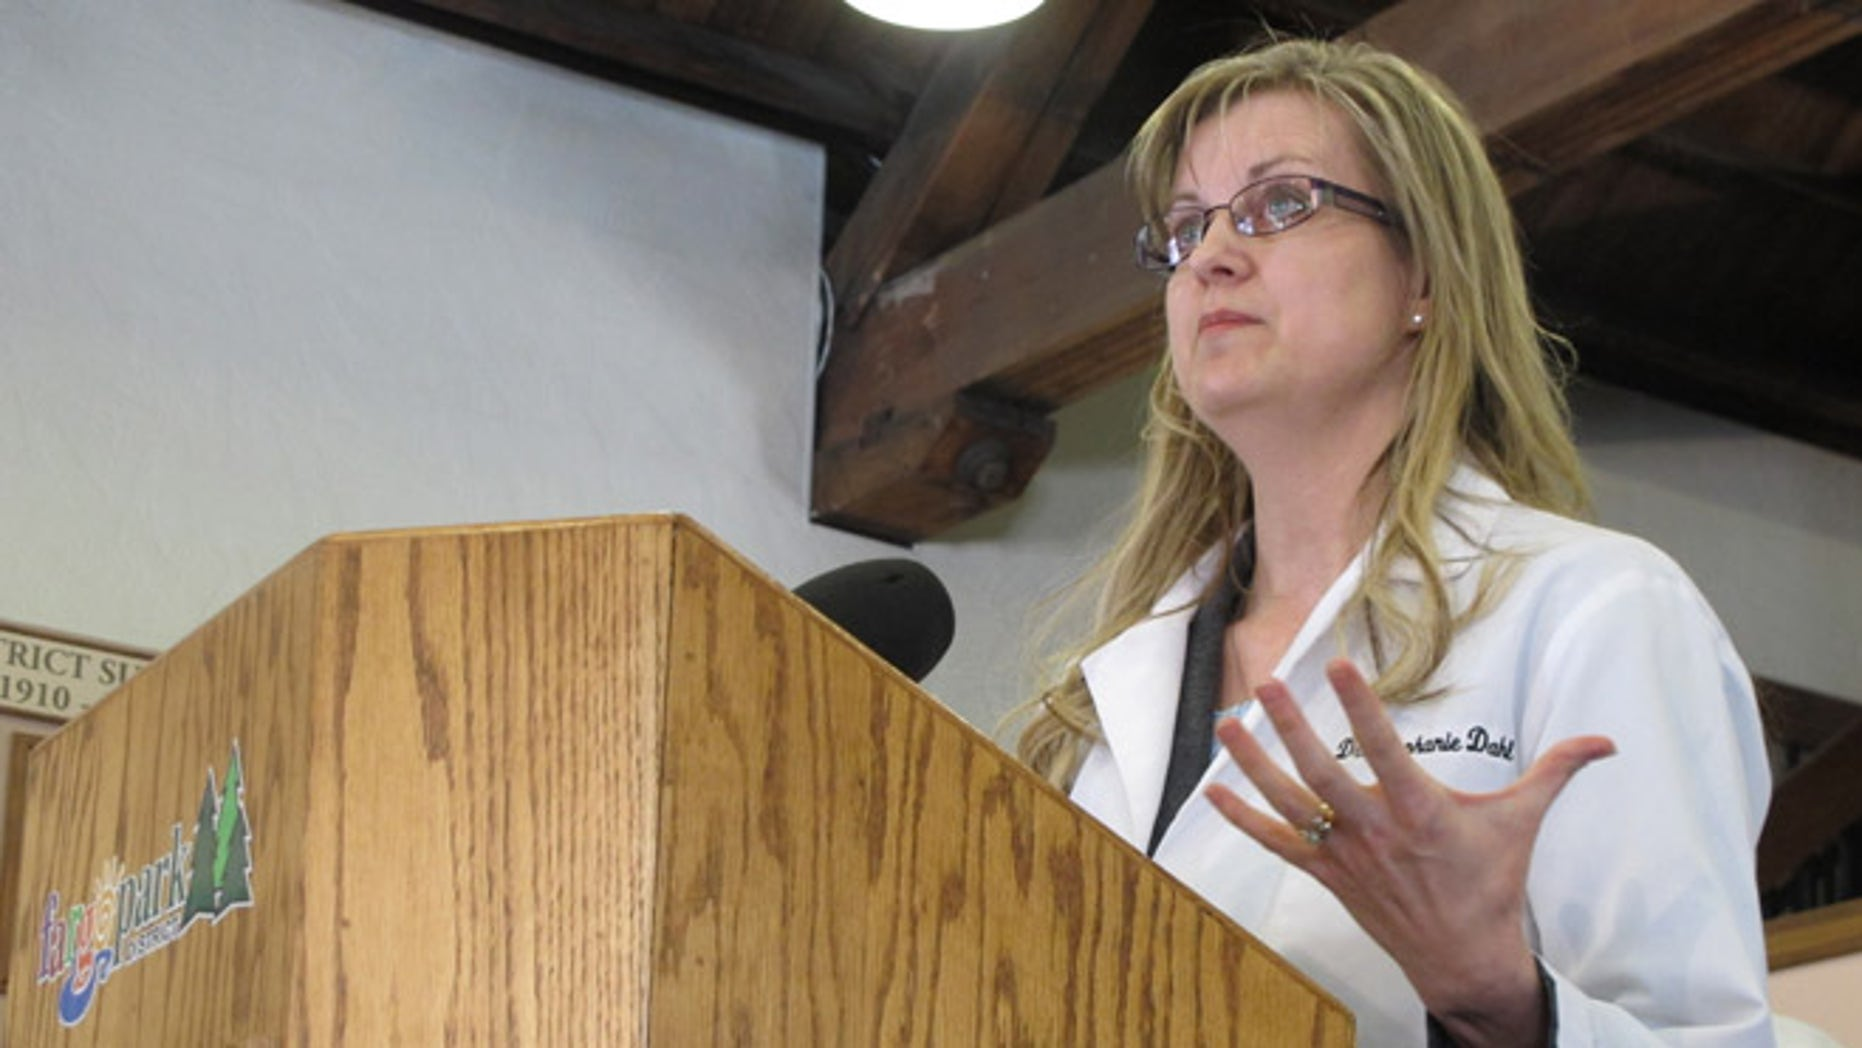 March 18, 2013: Dr. Stephanie Dahl, a Fargo infertility specialist, speaks out against two anti-abortion bills in the North Dakota Legislature during a news conference in Fargo, N.D.